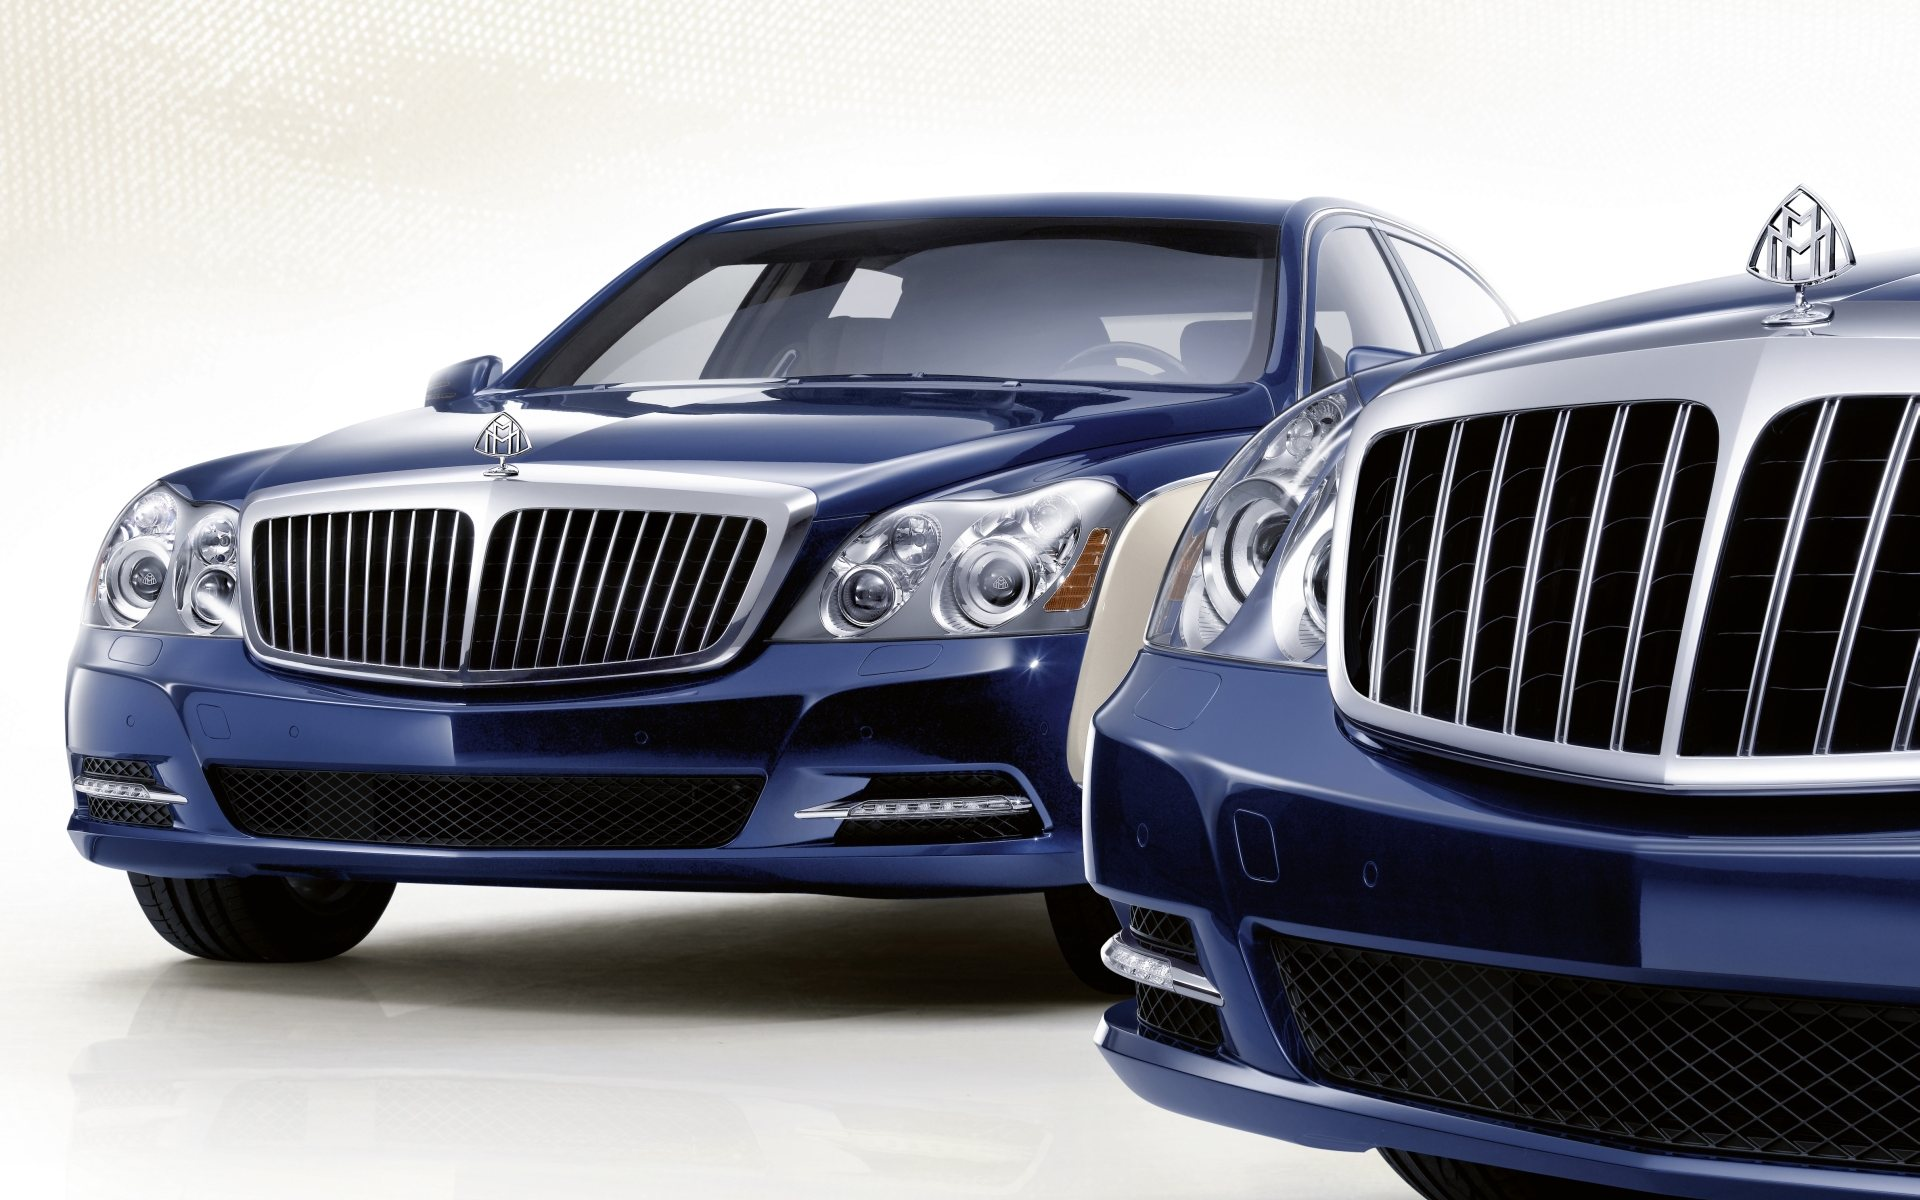 2011_Maybach_Modellpflege_Excellence_Refined_4